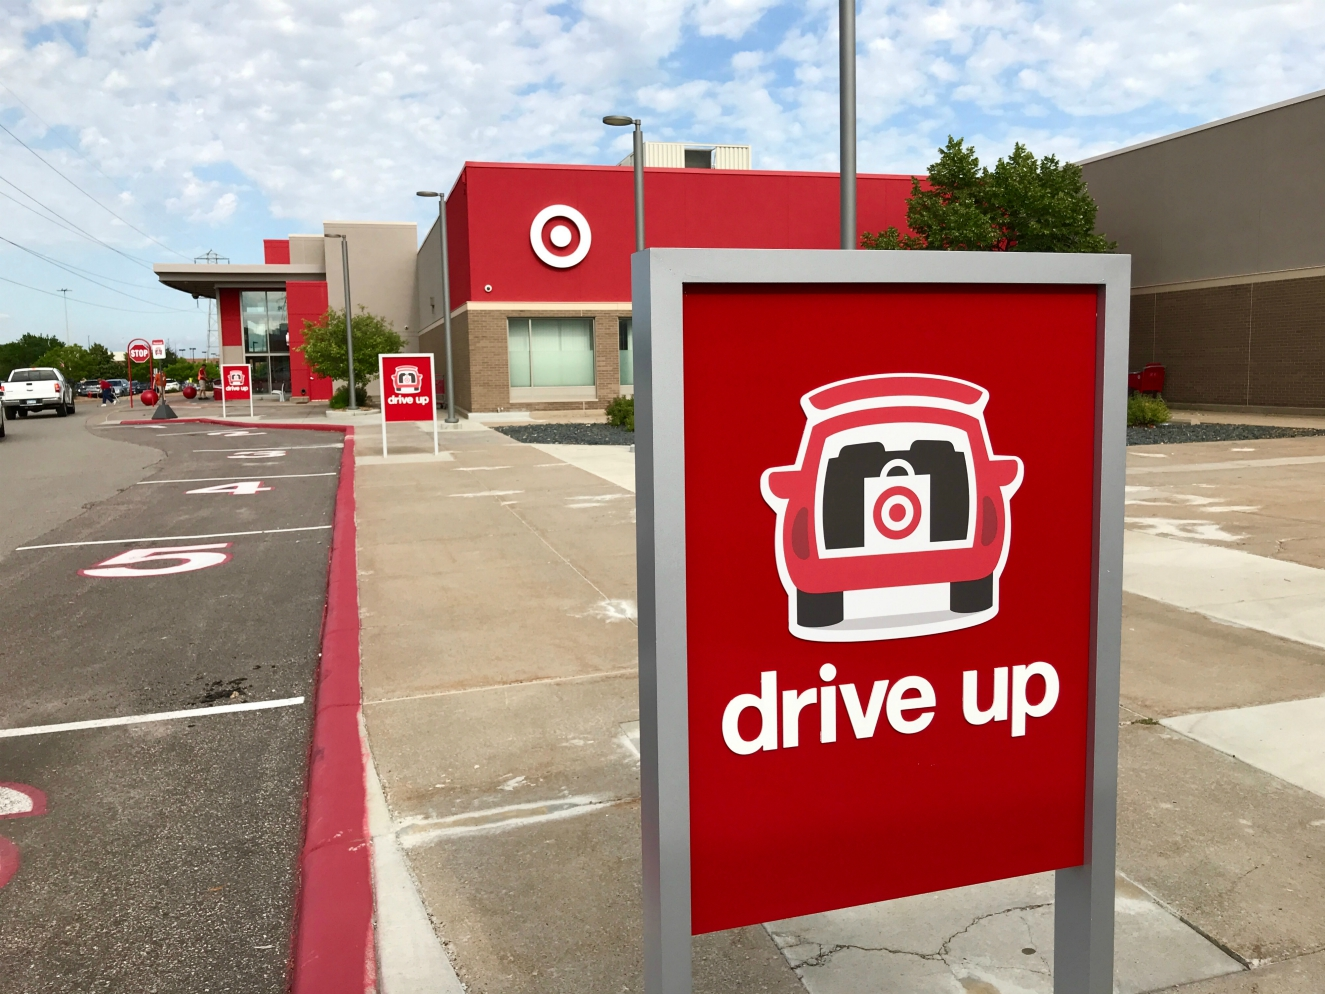 Despite February comp sales rising 3.8 percent, Target will remodel fewer stores and open fewer small formats this year amid the outbreak.